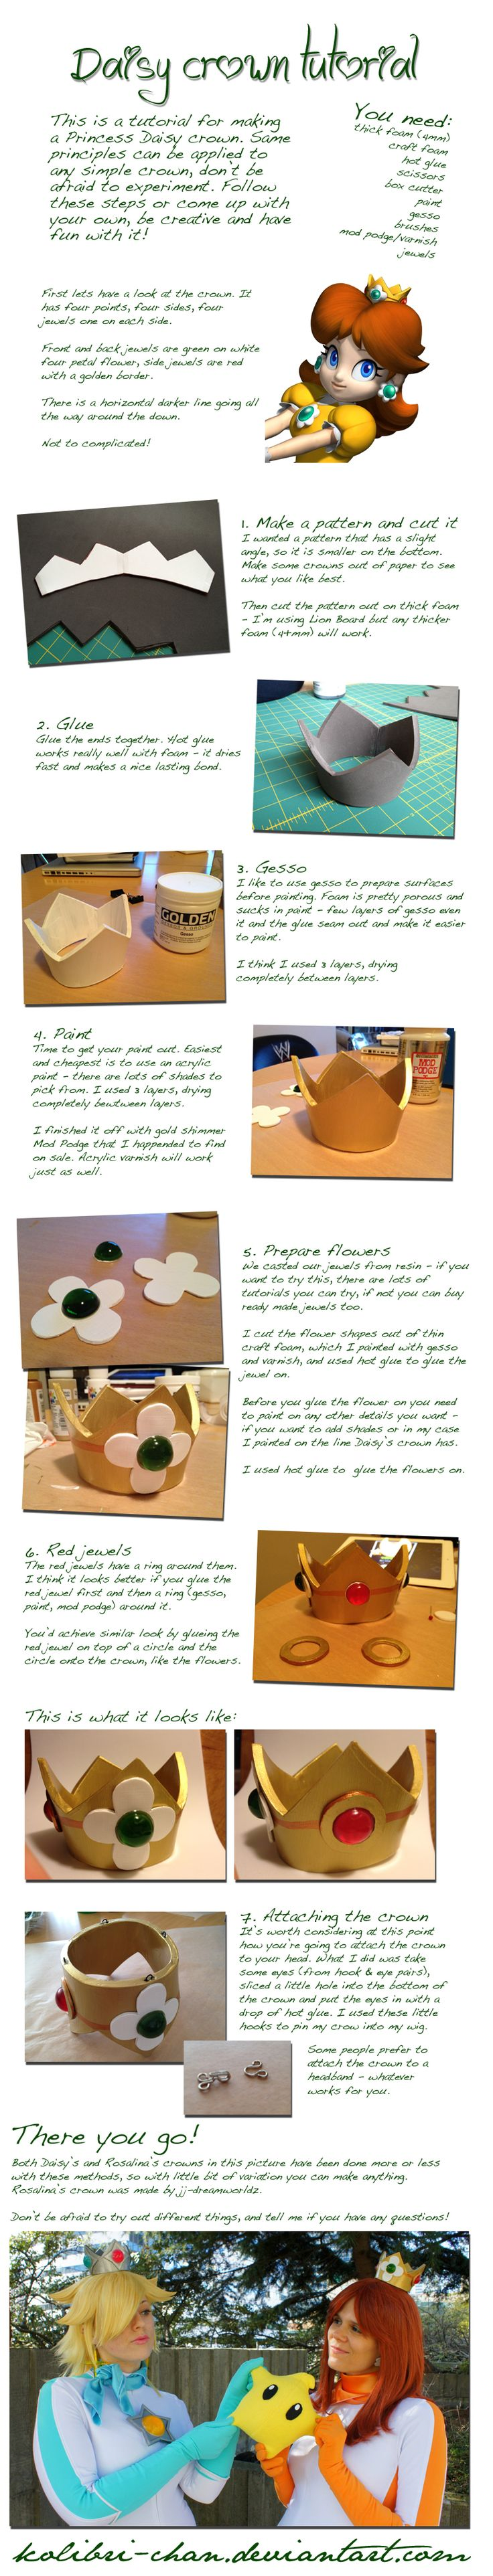 Princess Daisy crown tutorial by *kolibri-chan on deviantART